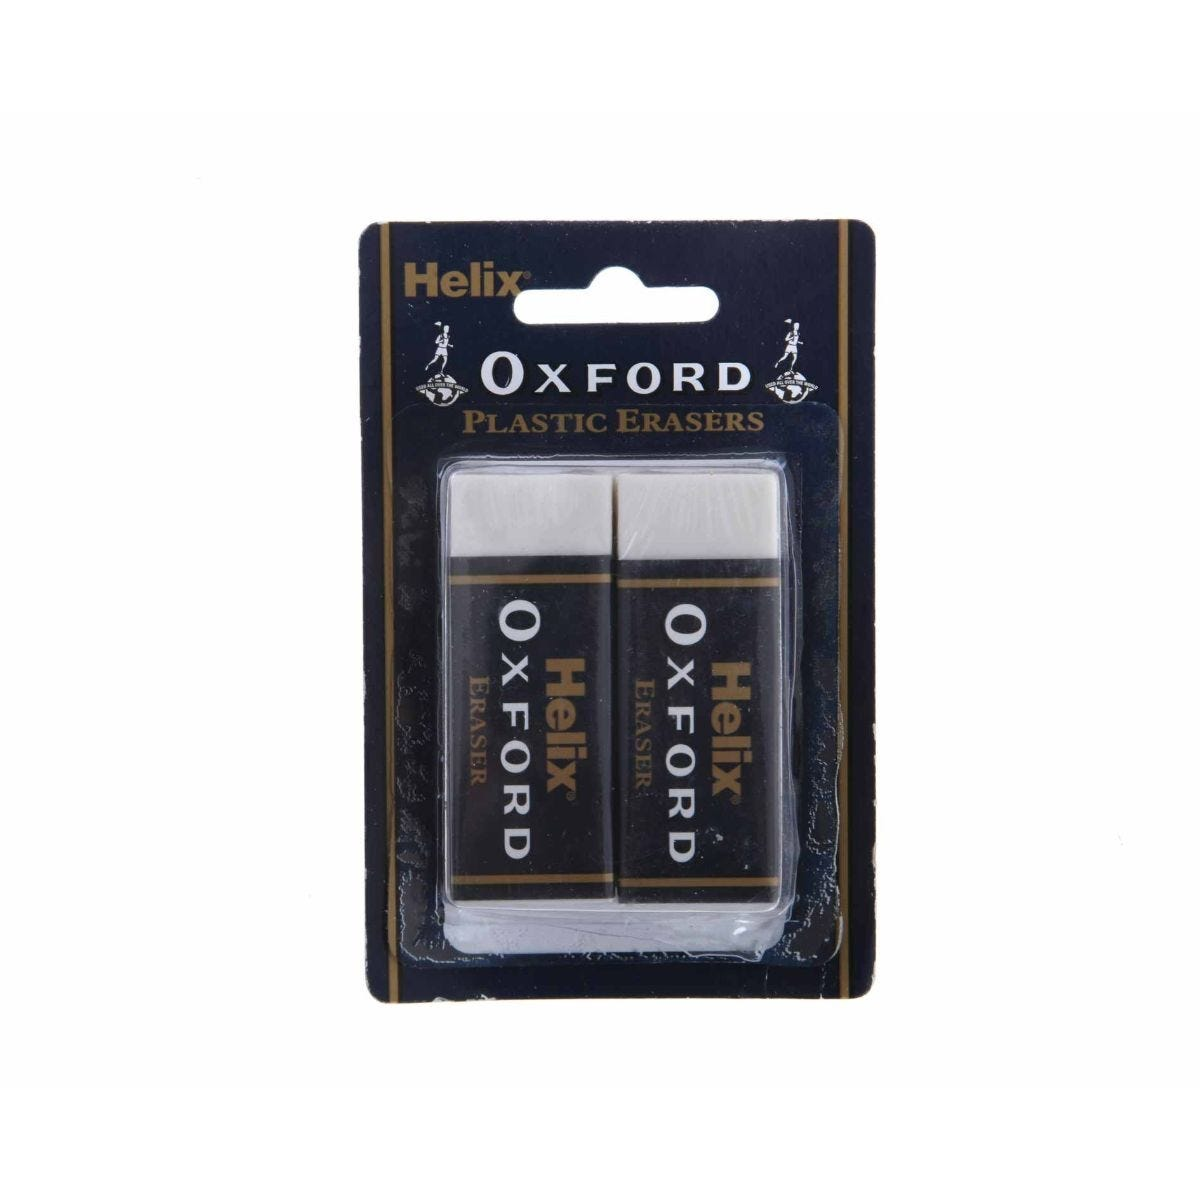 Helix Oxford Erasers Pack of 2